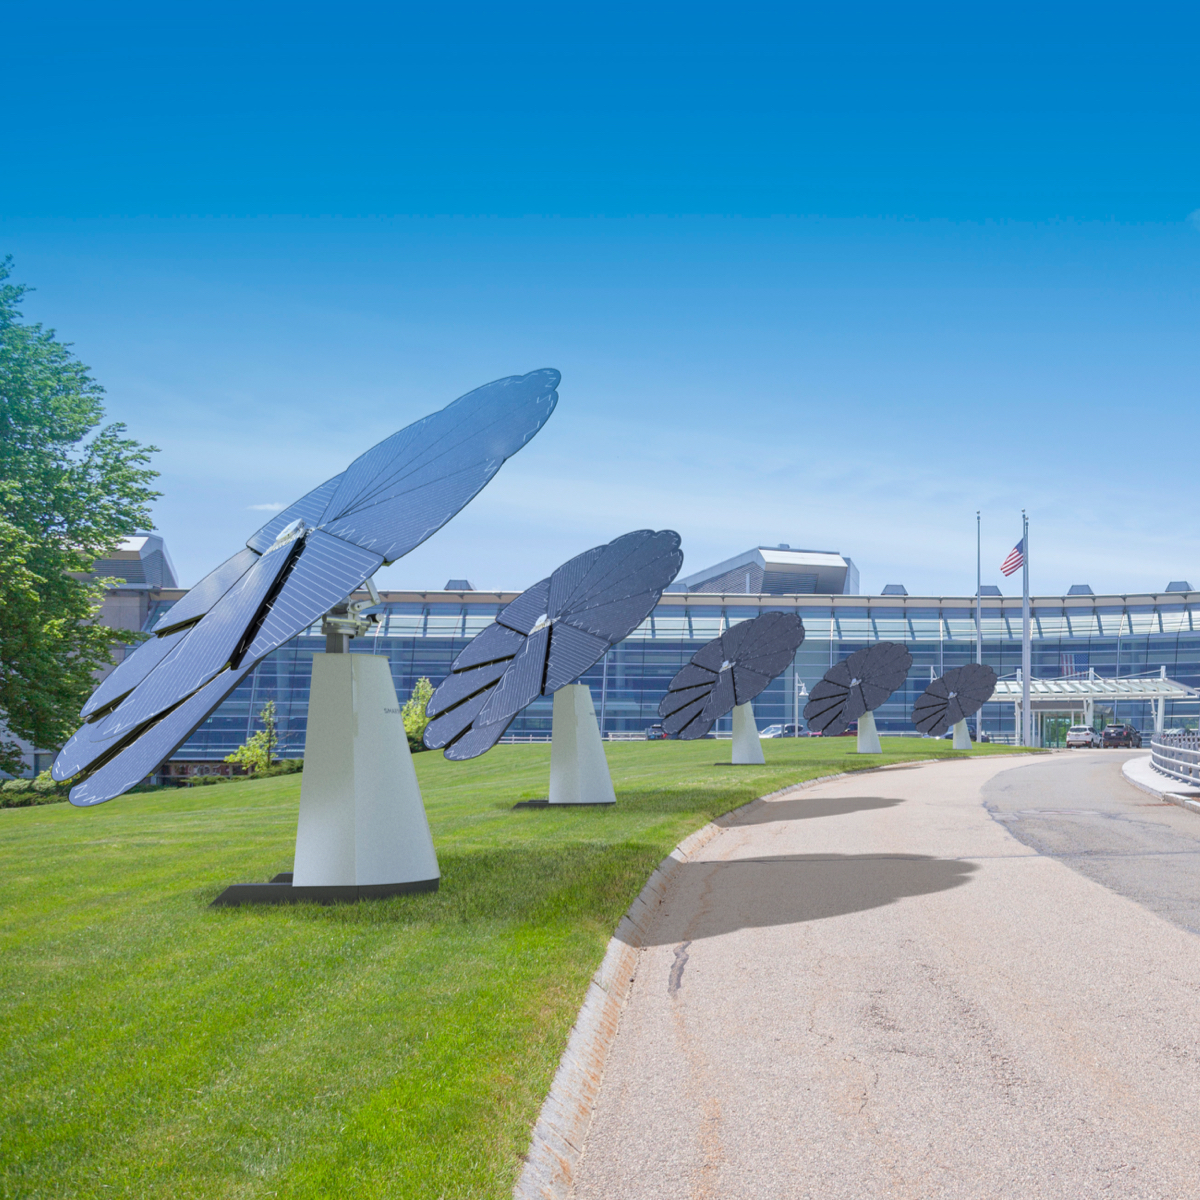 Solaranlage Garage The Solar Flower You Need To Experience Smartflower